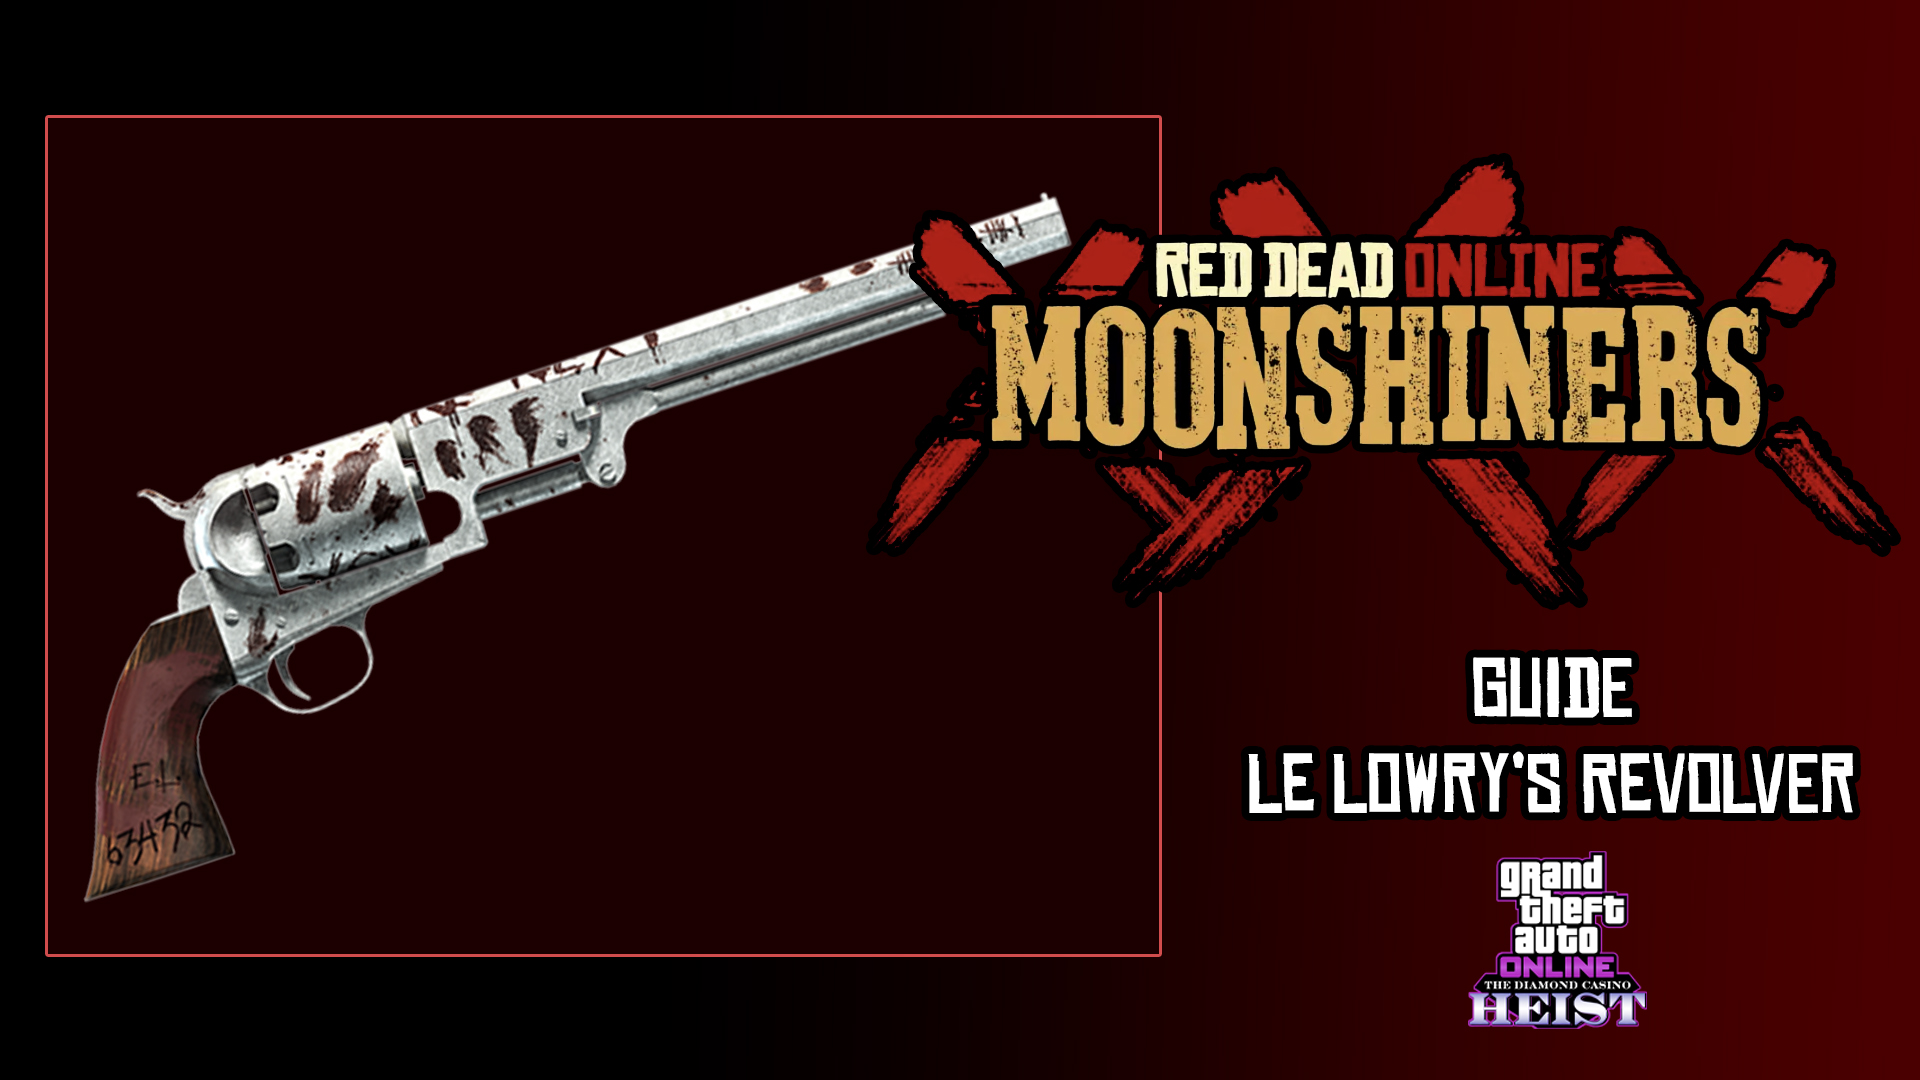 Red Dead Online Guide Lowry's Revolver